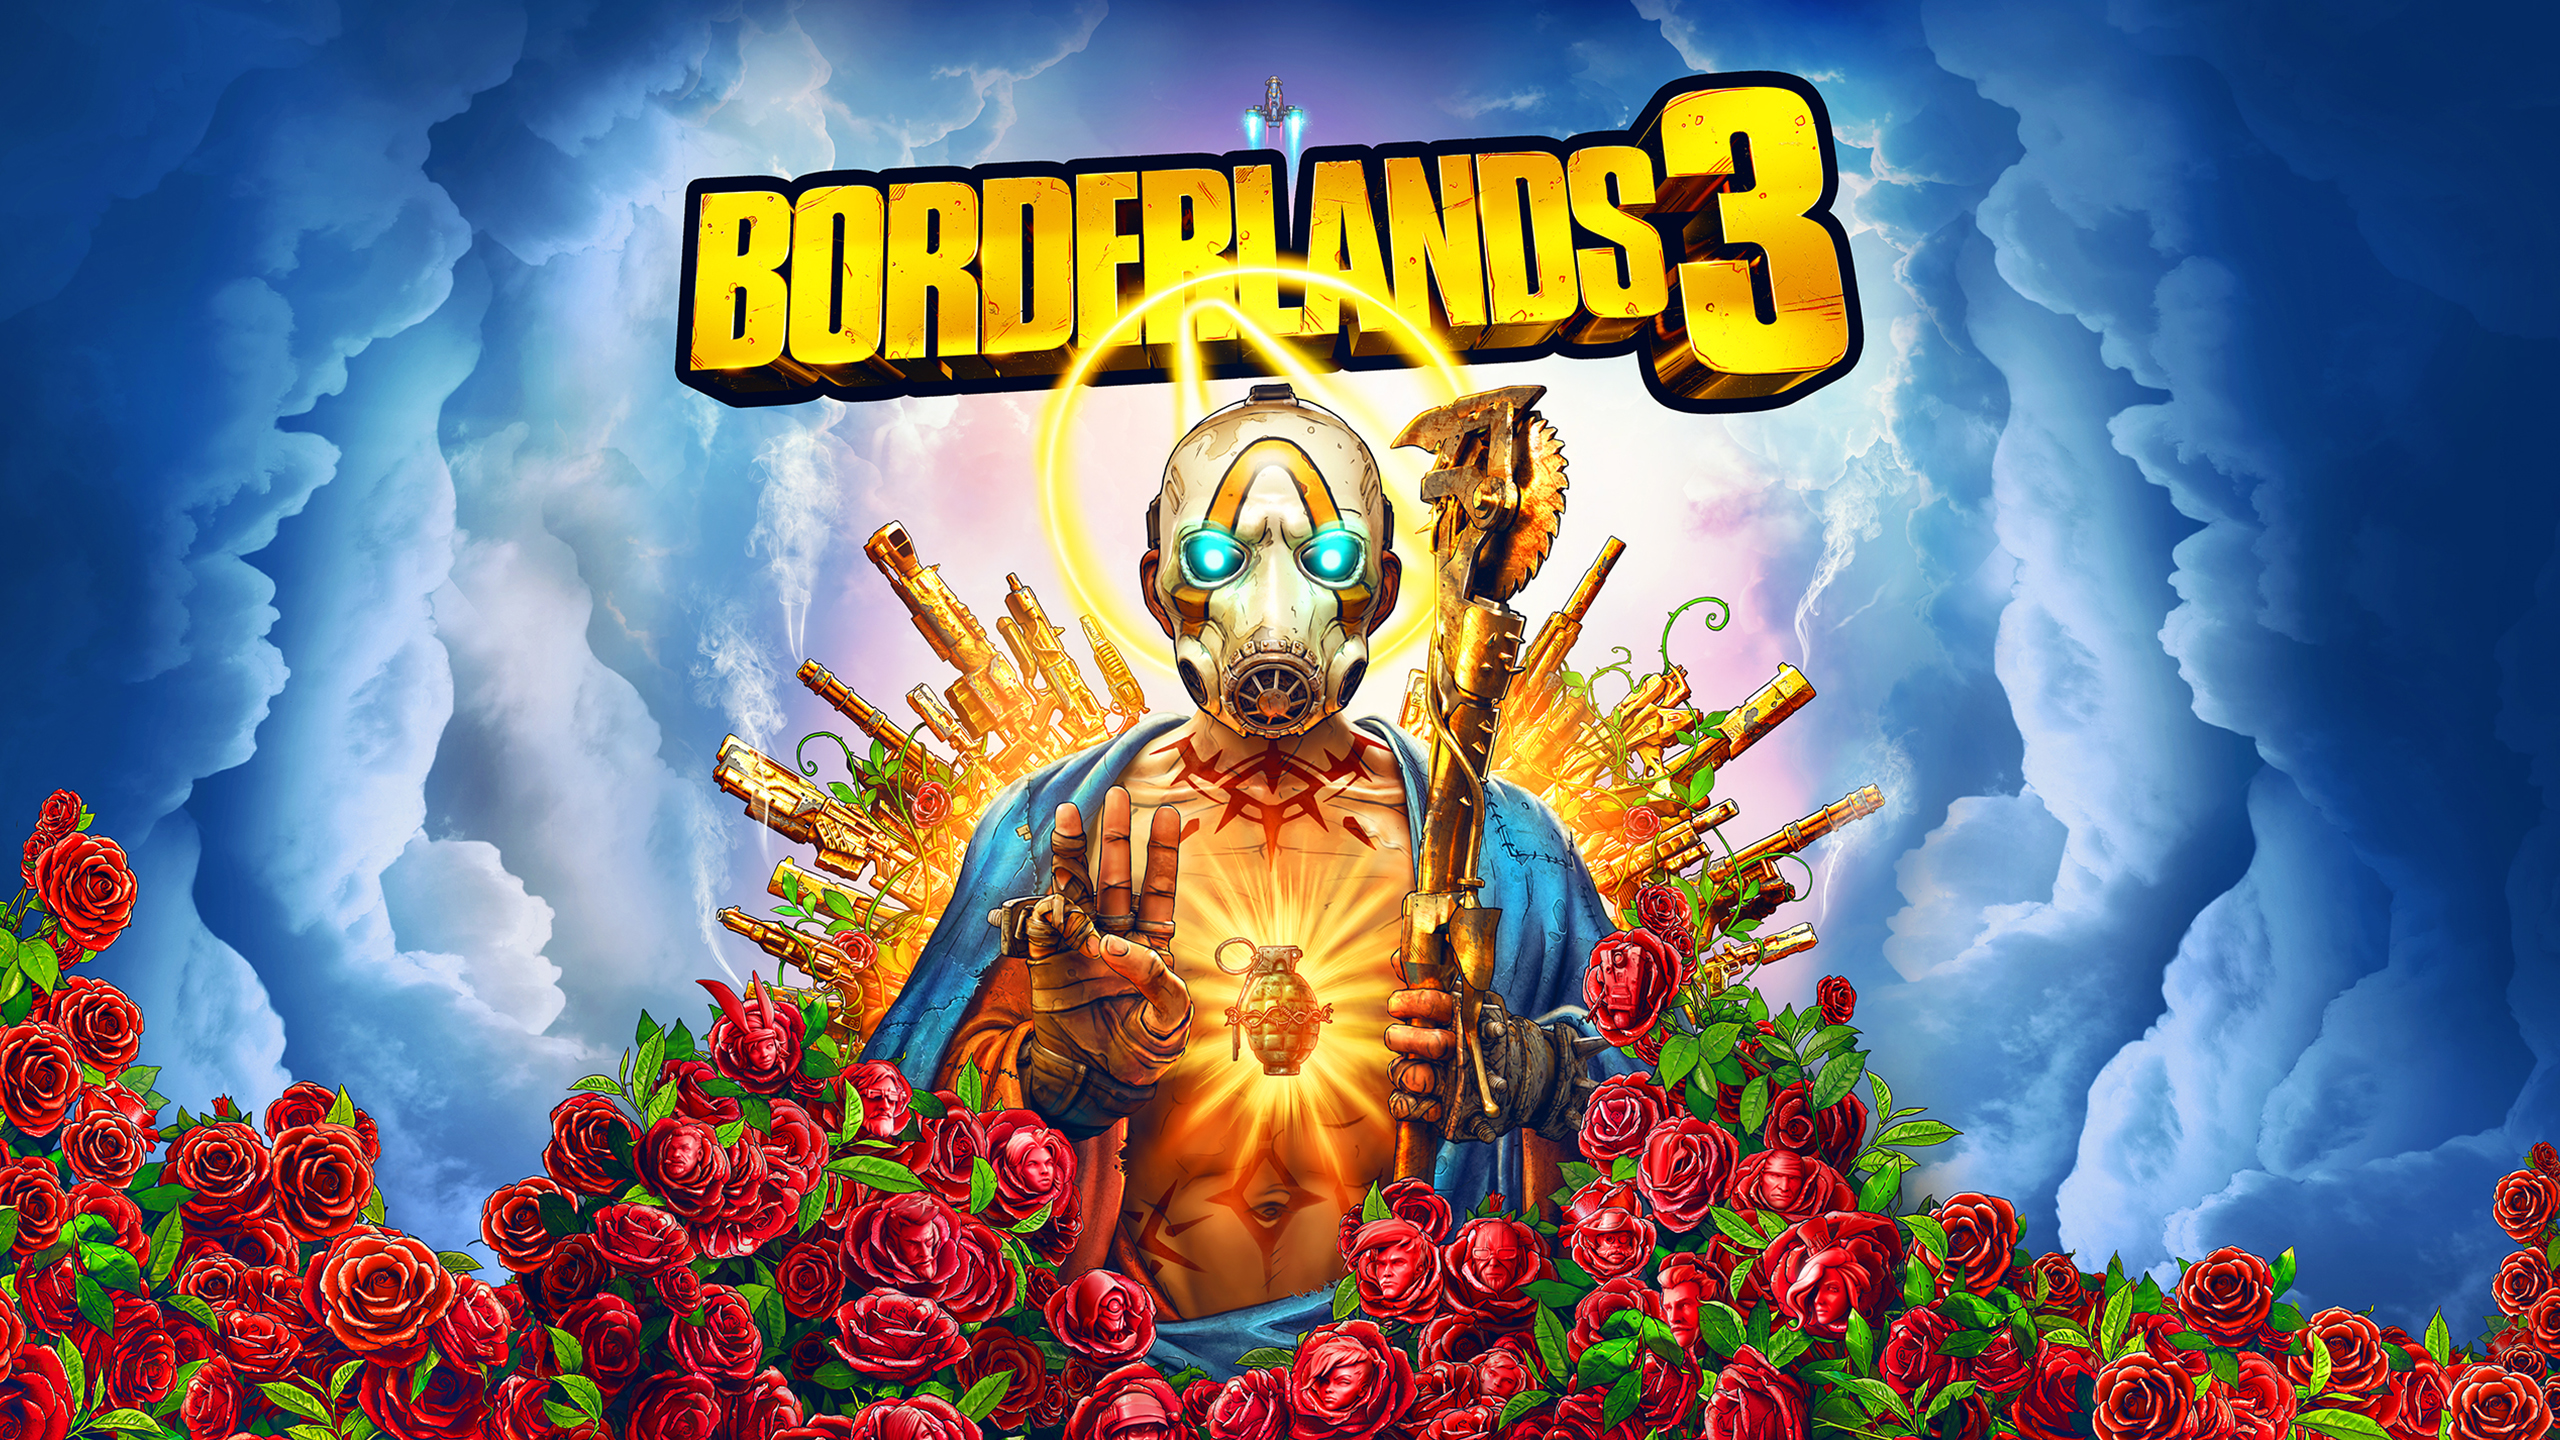 'Borderlands 3' Is Coming To The Epic Games Store